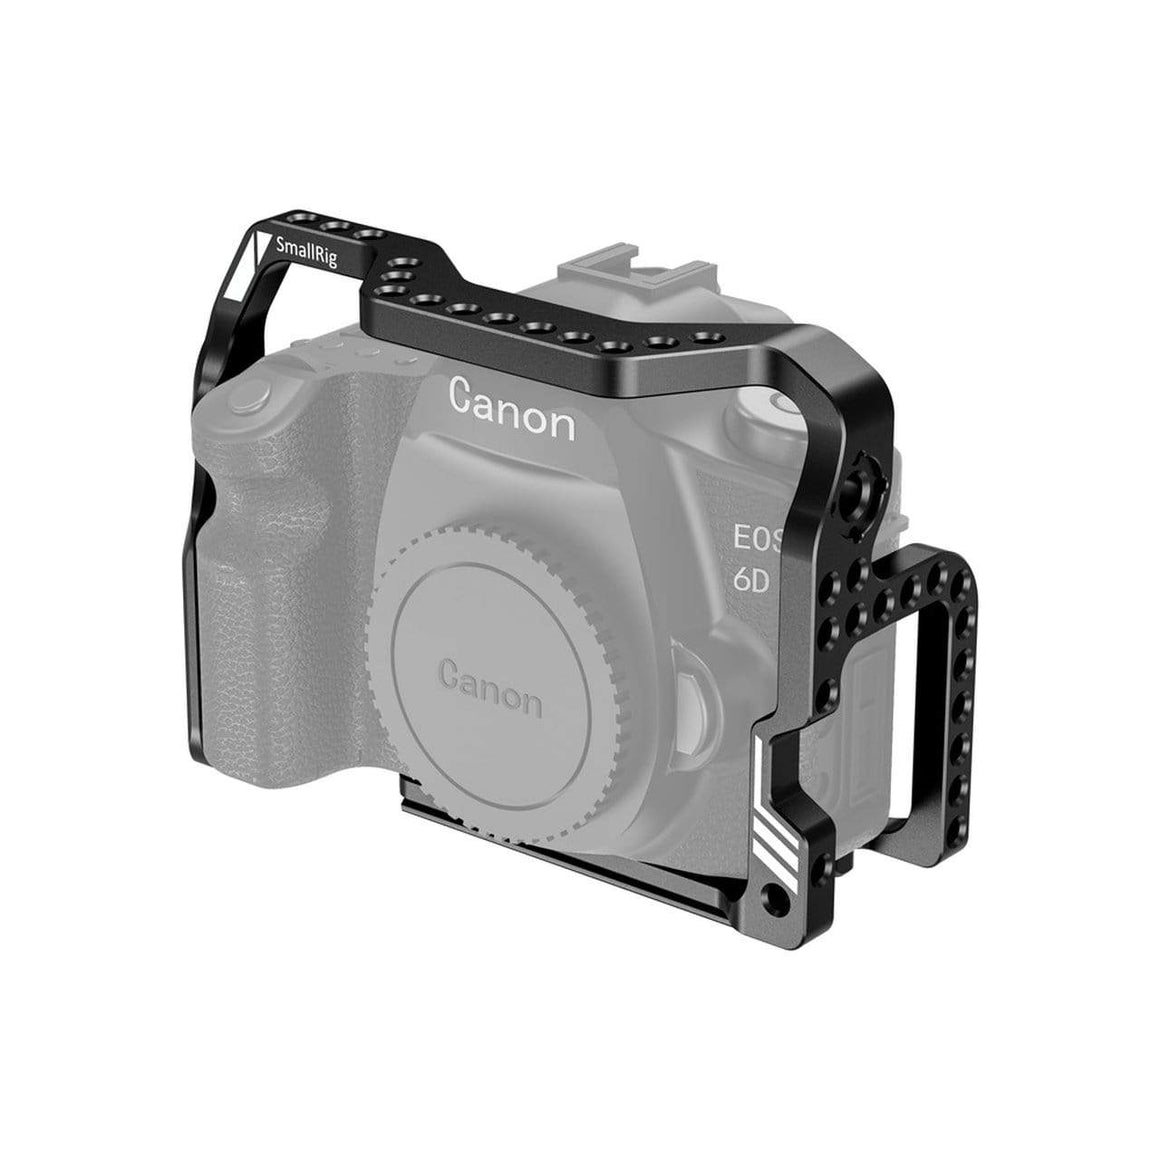 SmallRig Cage for Canon EOS 6D 2407